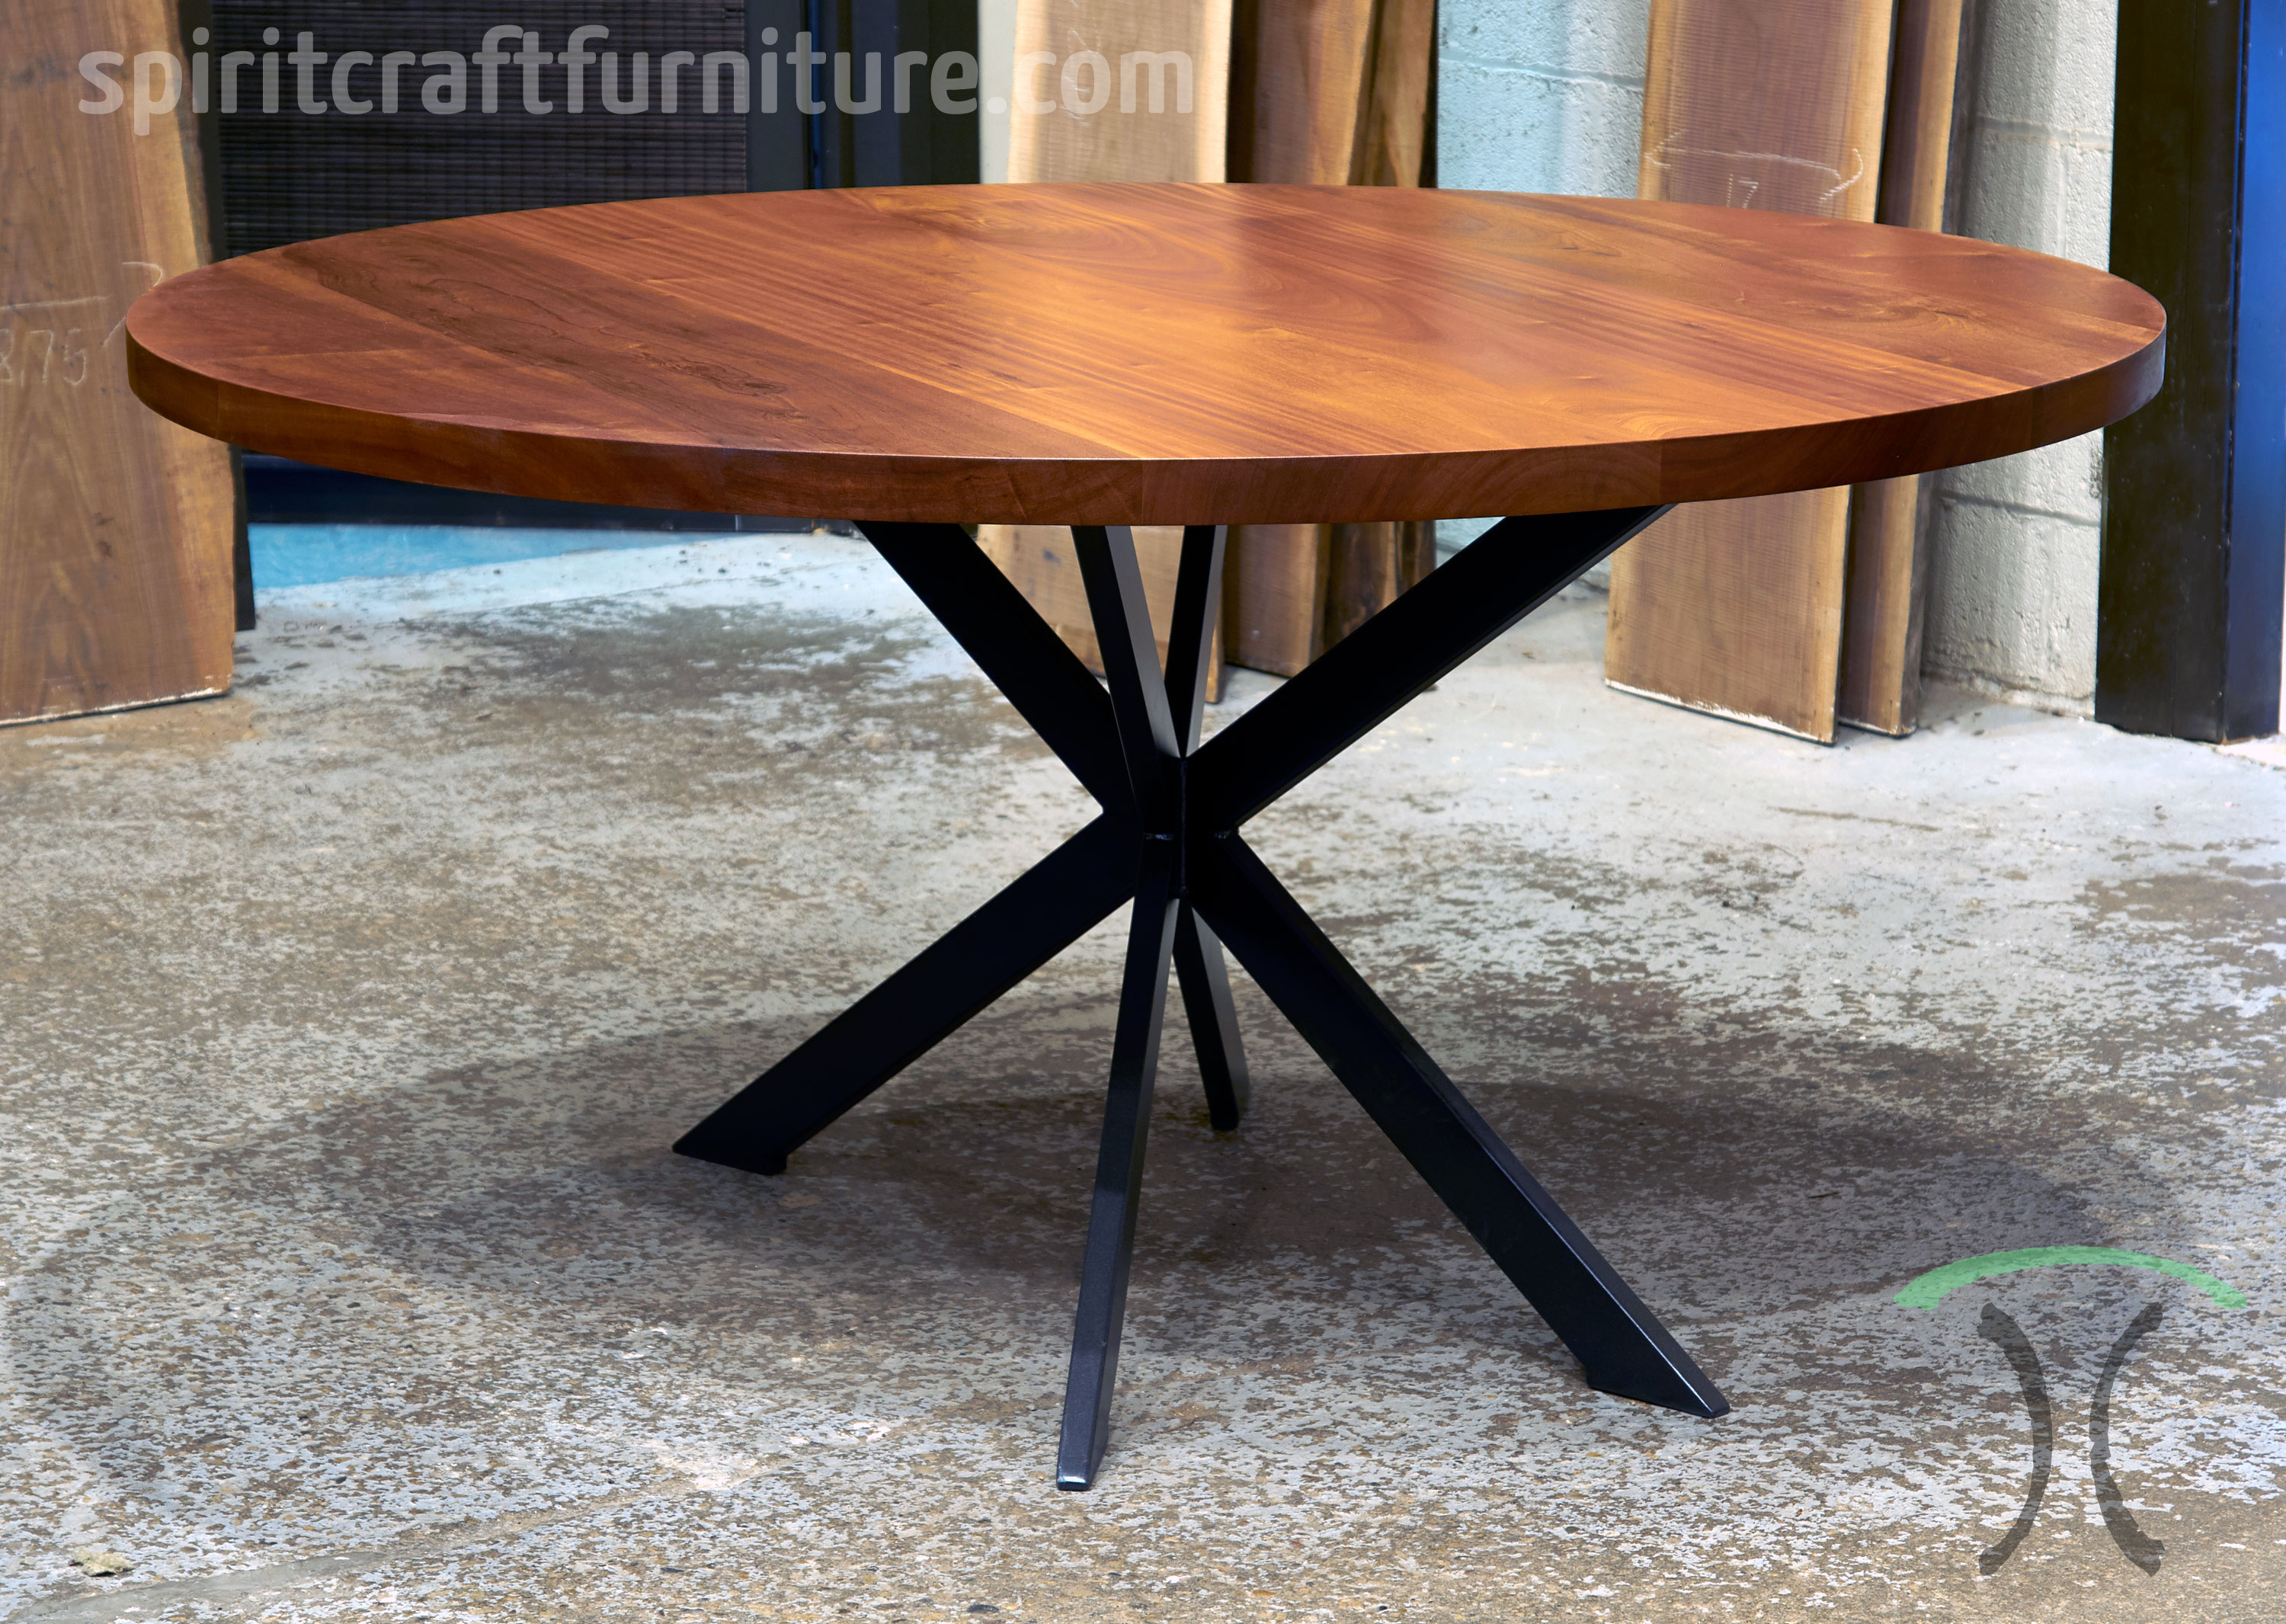 Solid Sapele Gany 72 Inch Round Conference Table For Barrington Chicago Corporate Office Installation By Spiritcraft